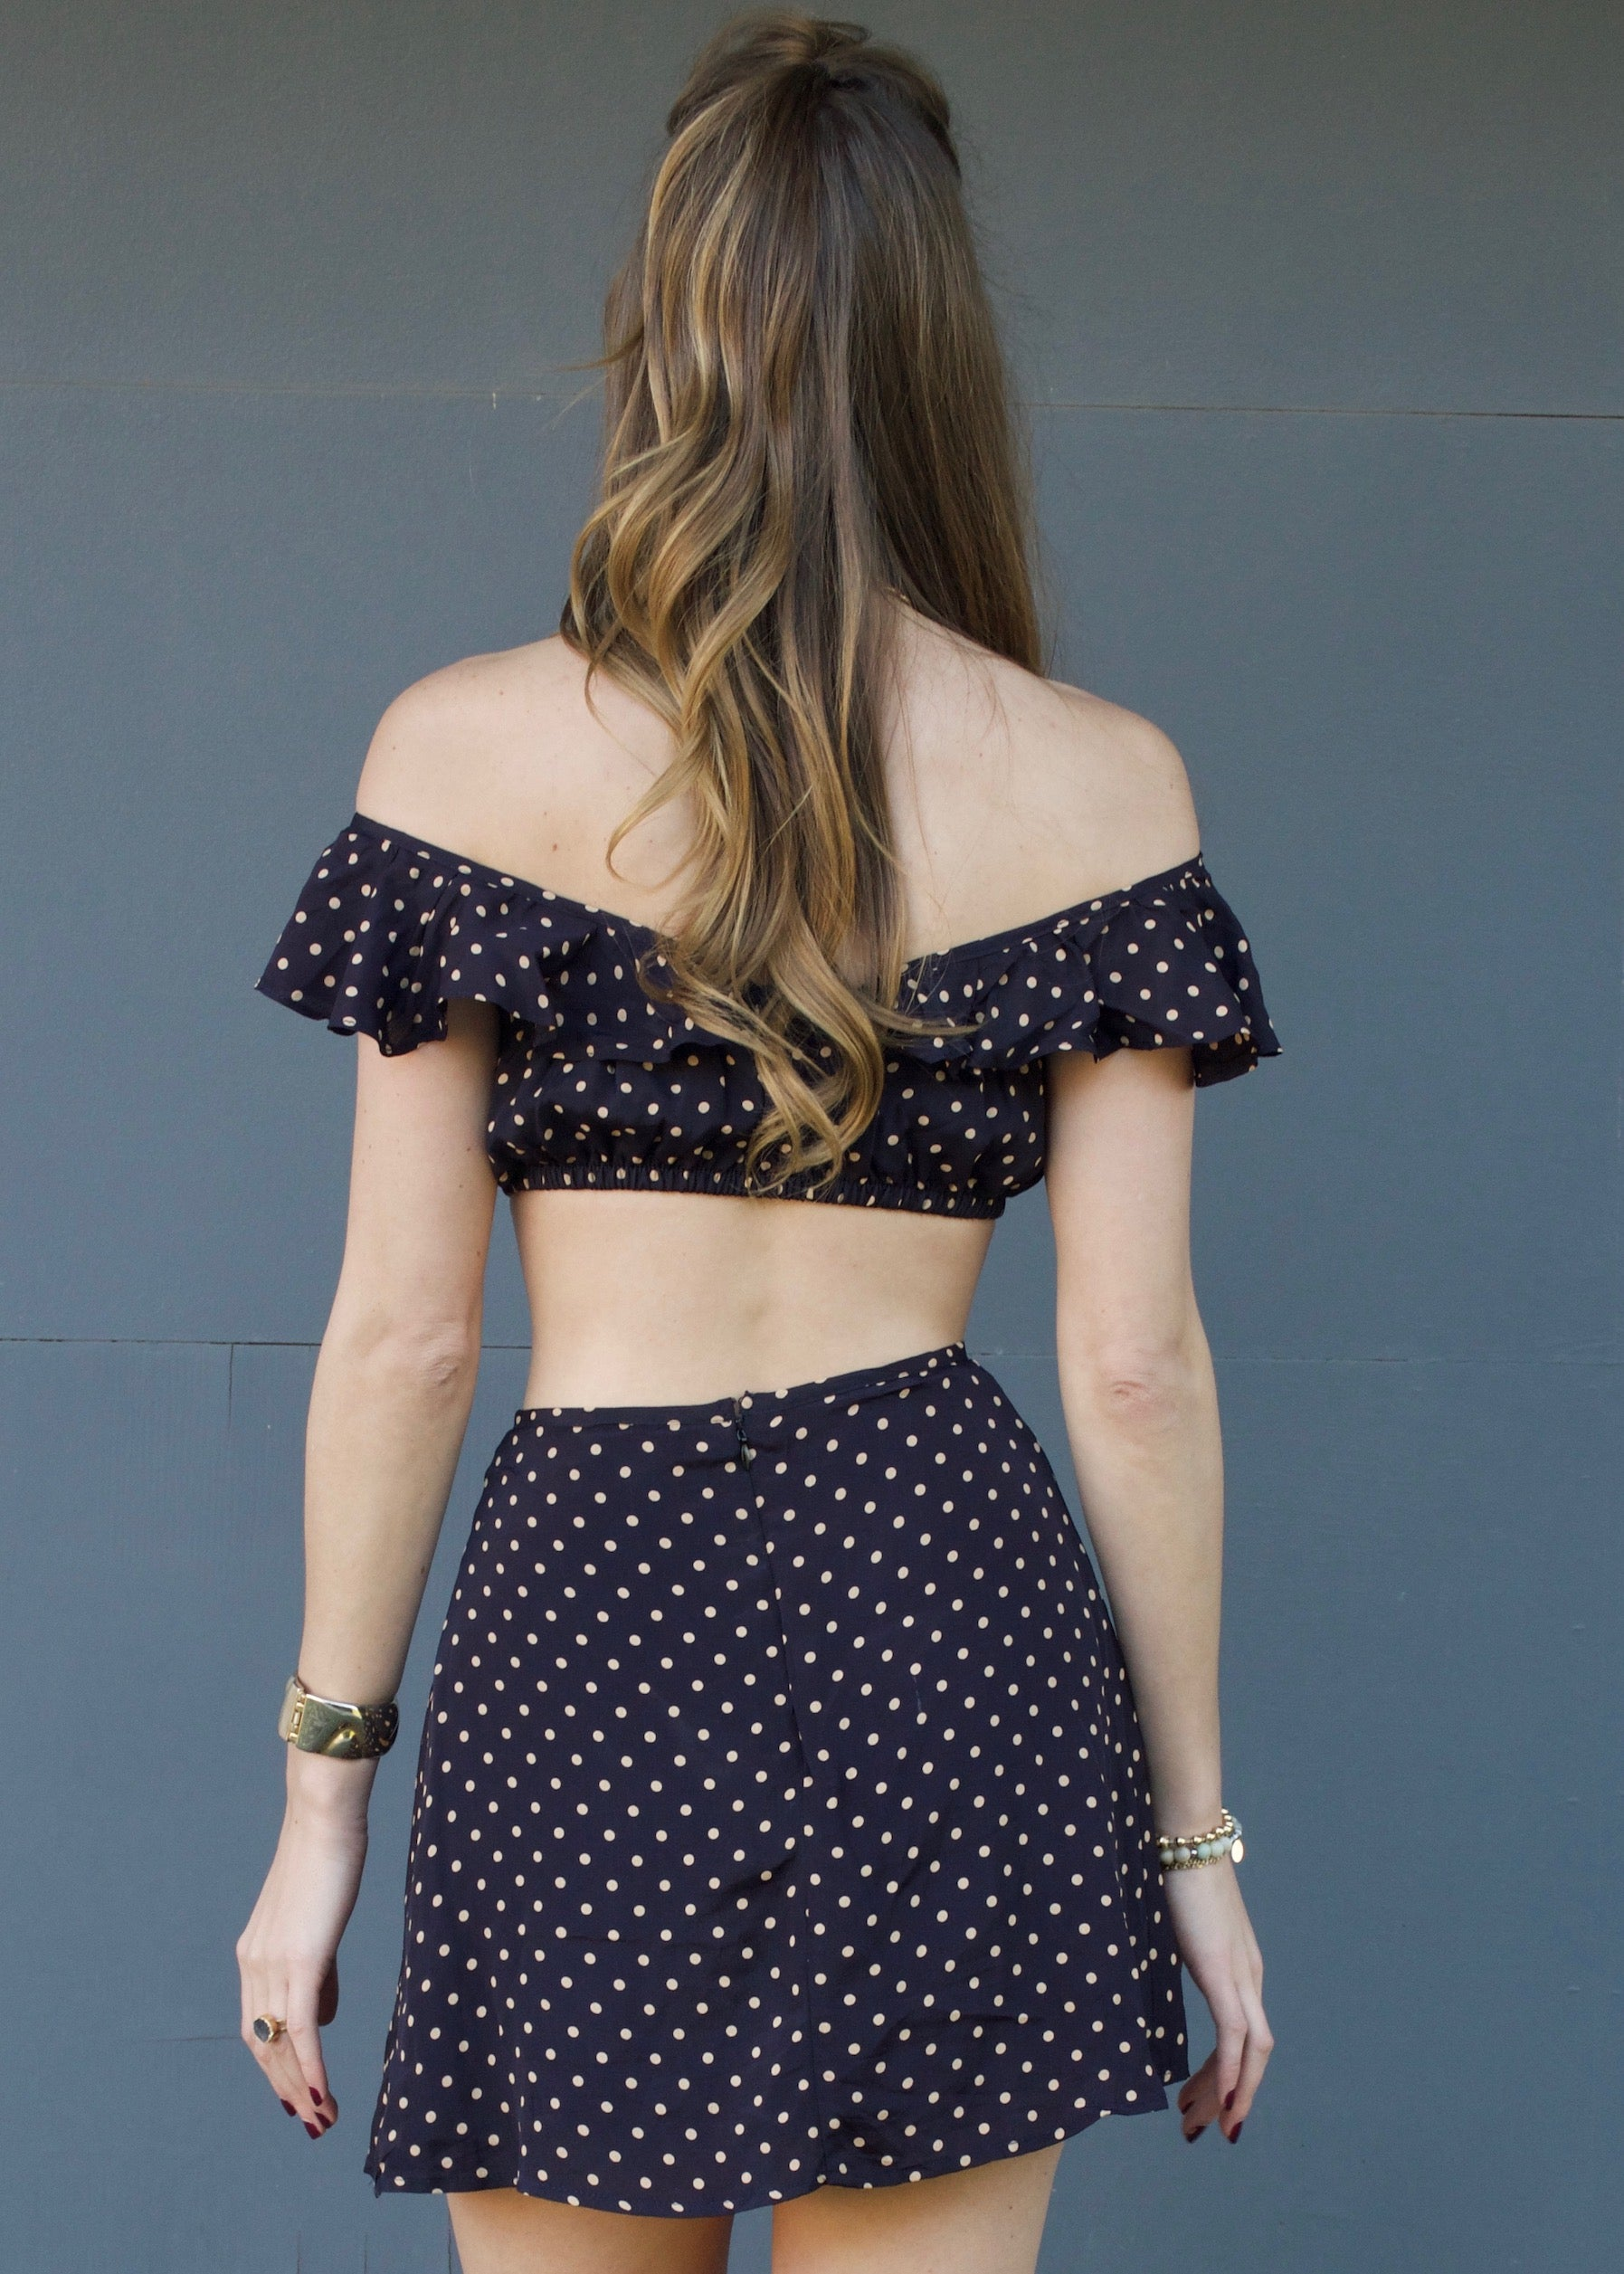 For Love and Lemons Polka Dot Mini Skirt and Crop Top Set - Purple eggplant